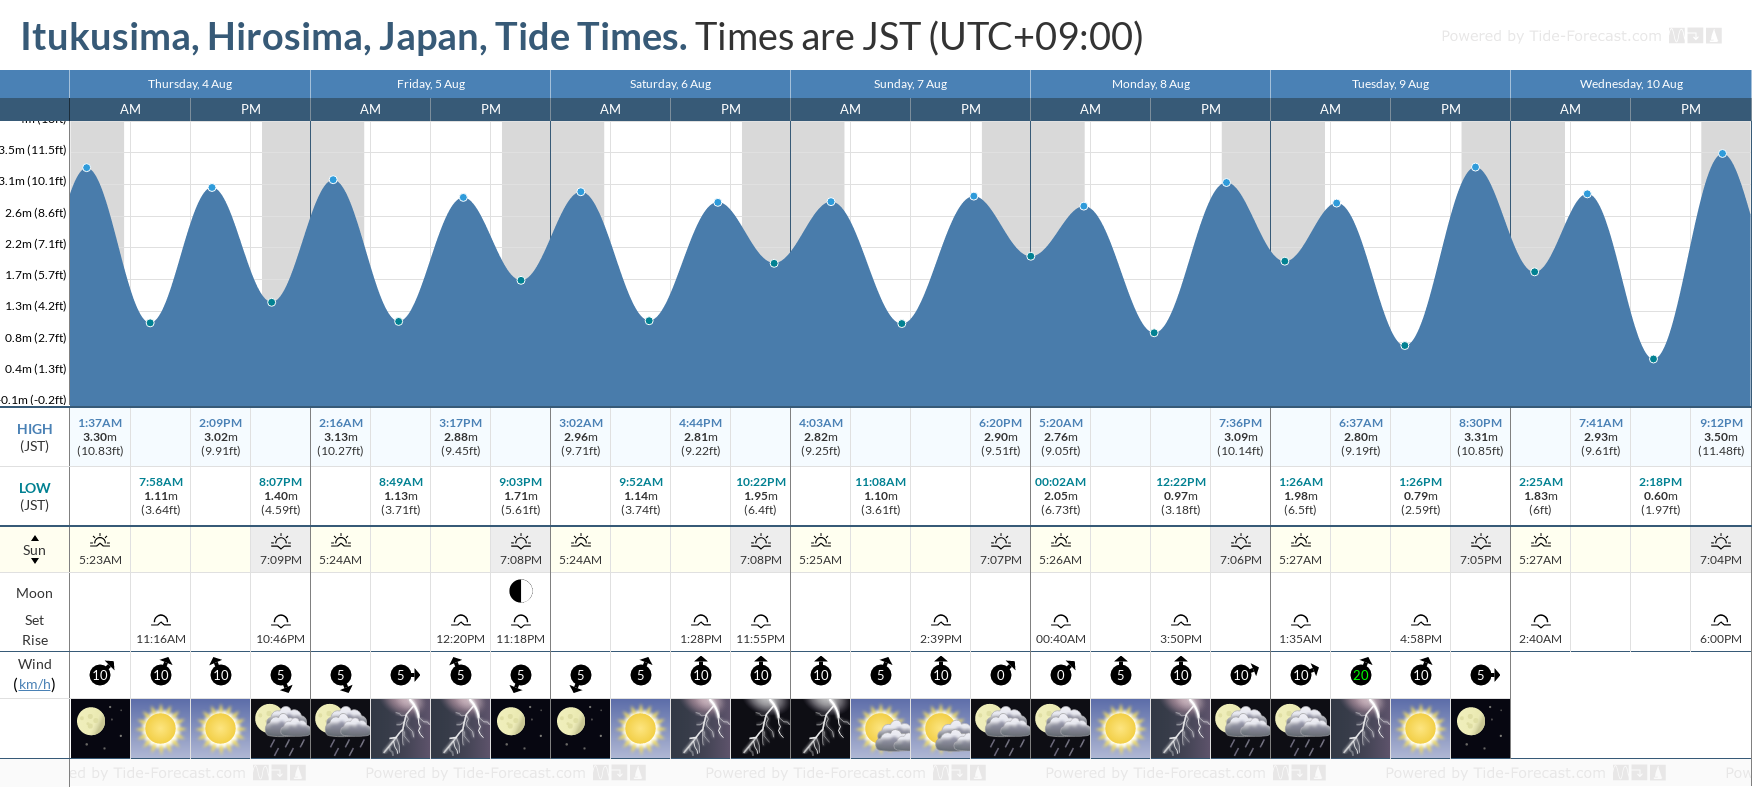 Itukusima, Hirosima, Japan Tide Chart including high and low tide tide times for the next 7 days